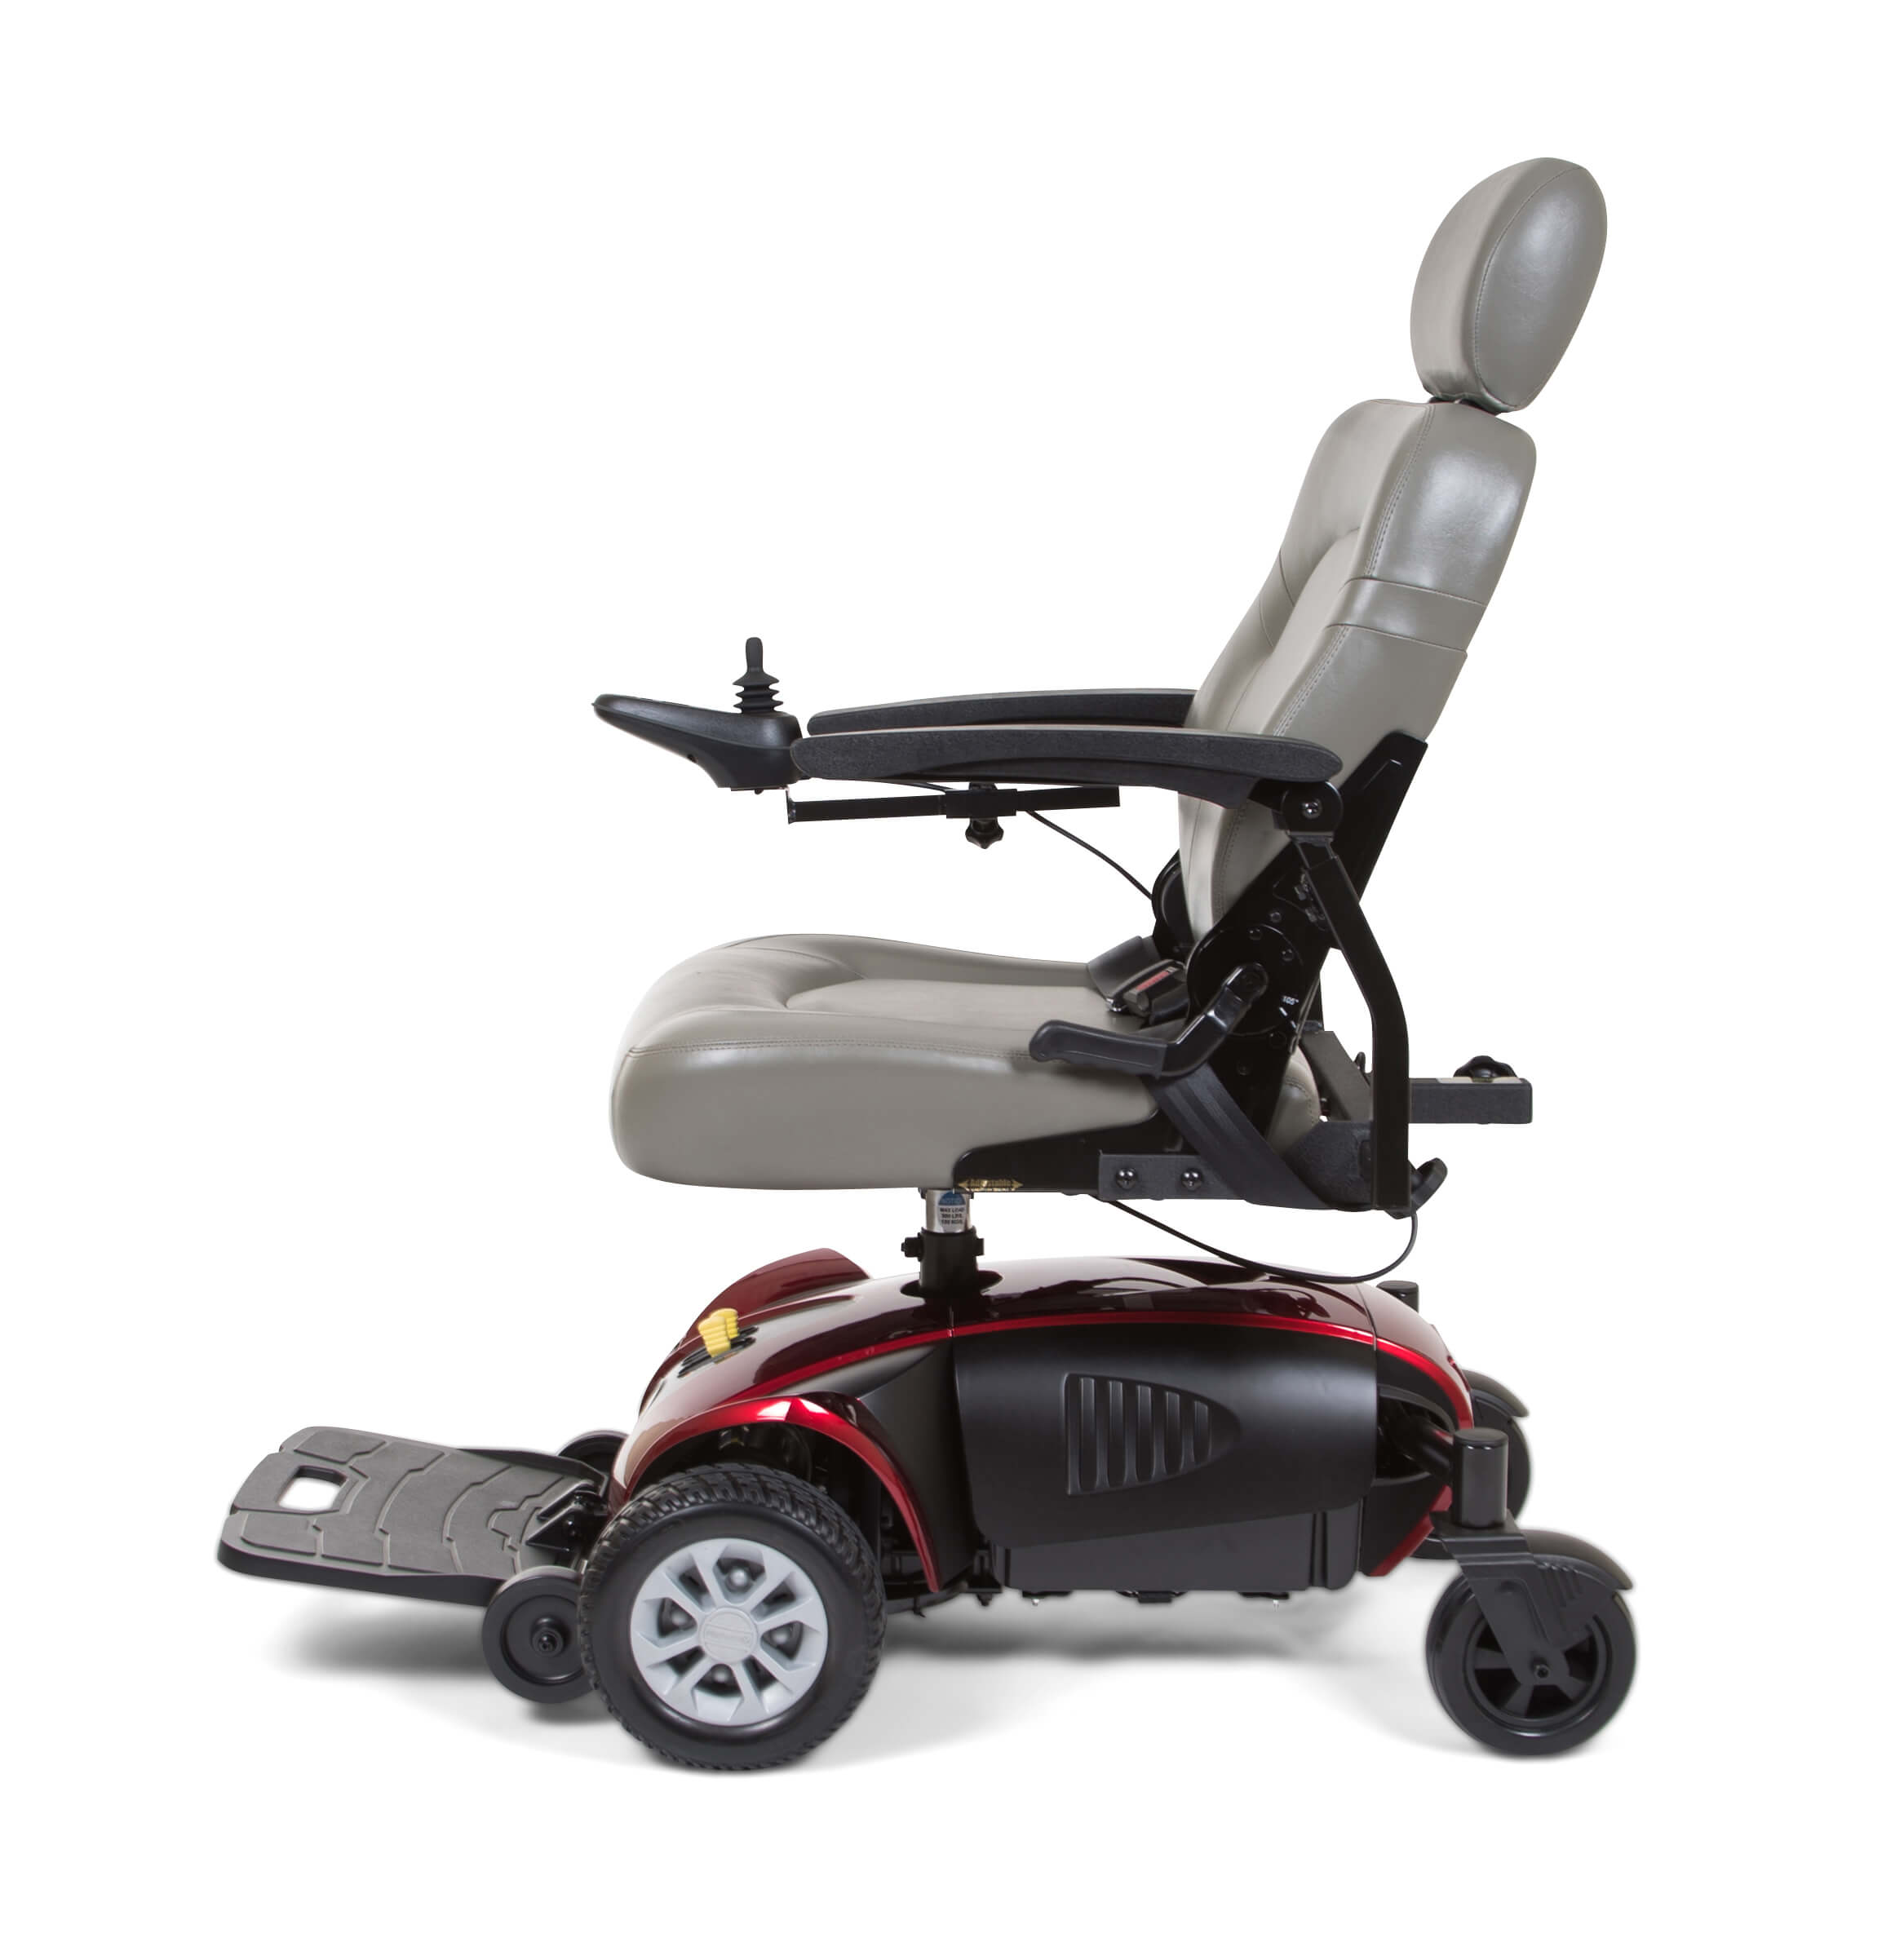 golden power chair pico folding technologies gp205 alante sport full size wheelchair home mobility products scooters chairs